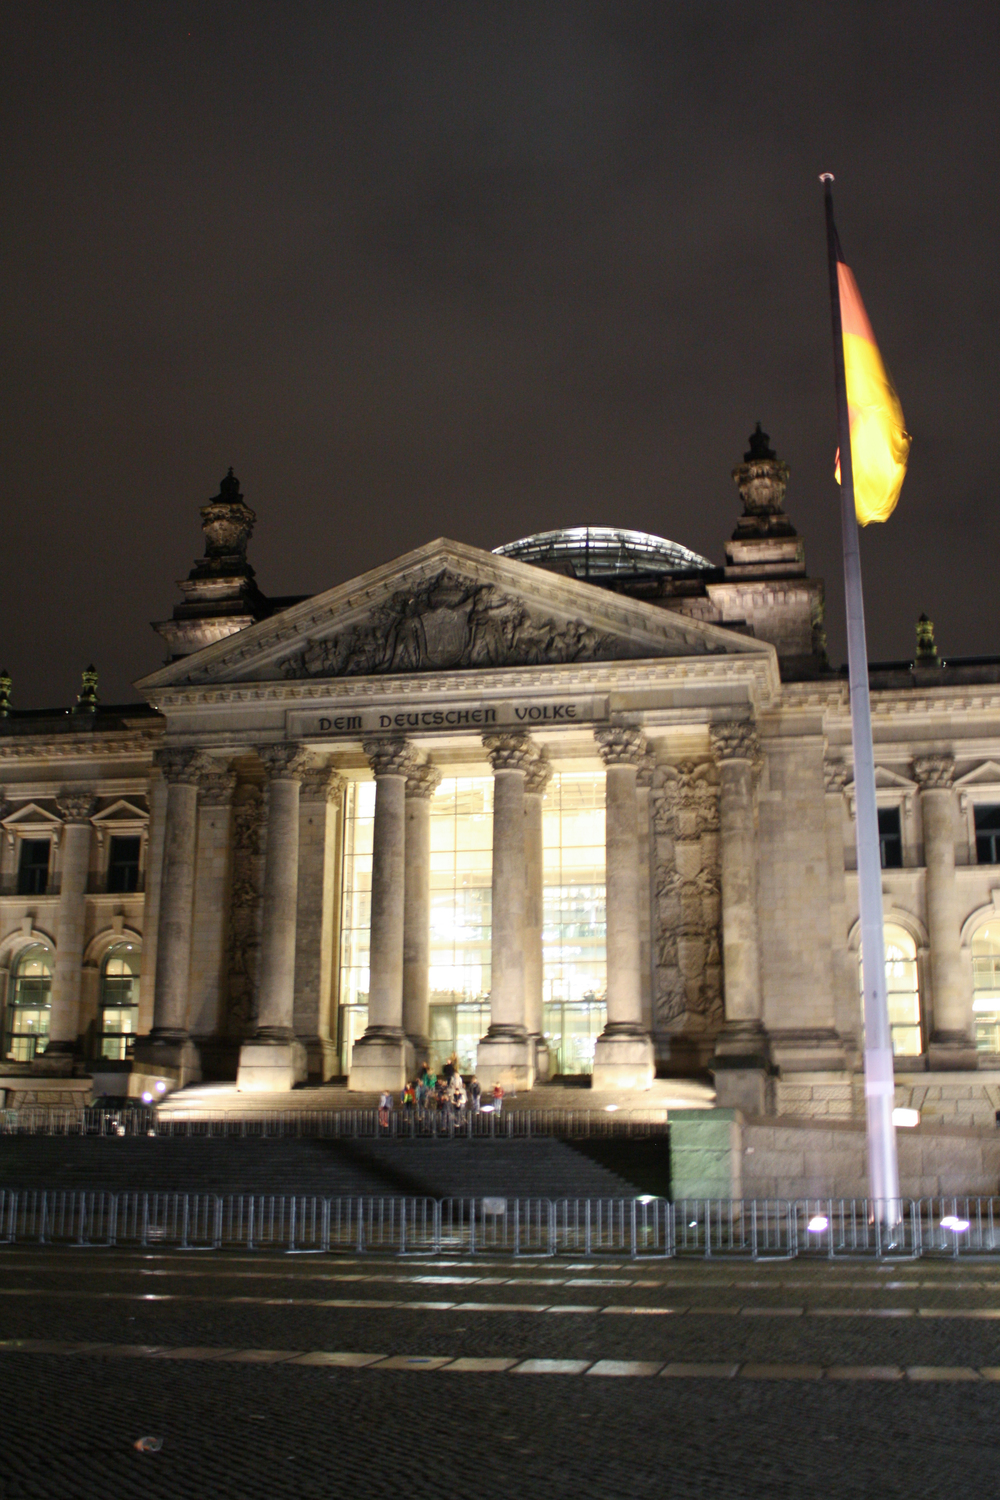 We also walked by the  Reichstag , where the German parliament assembles. I love the contrast of the older, columnar design upgraded with a modern glass dome.